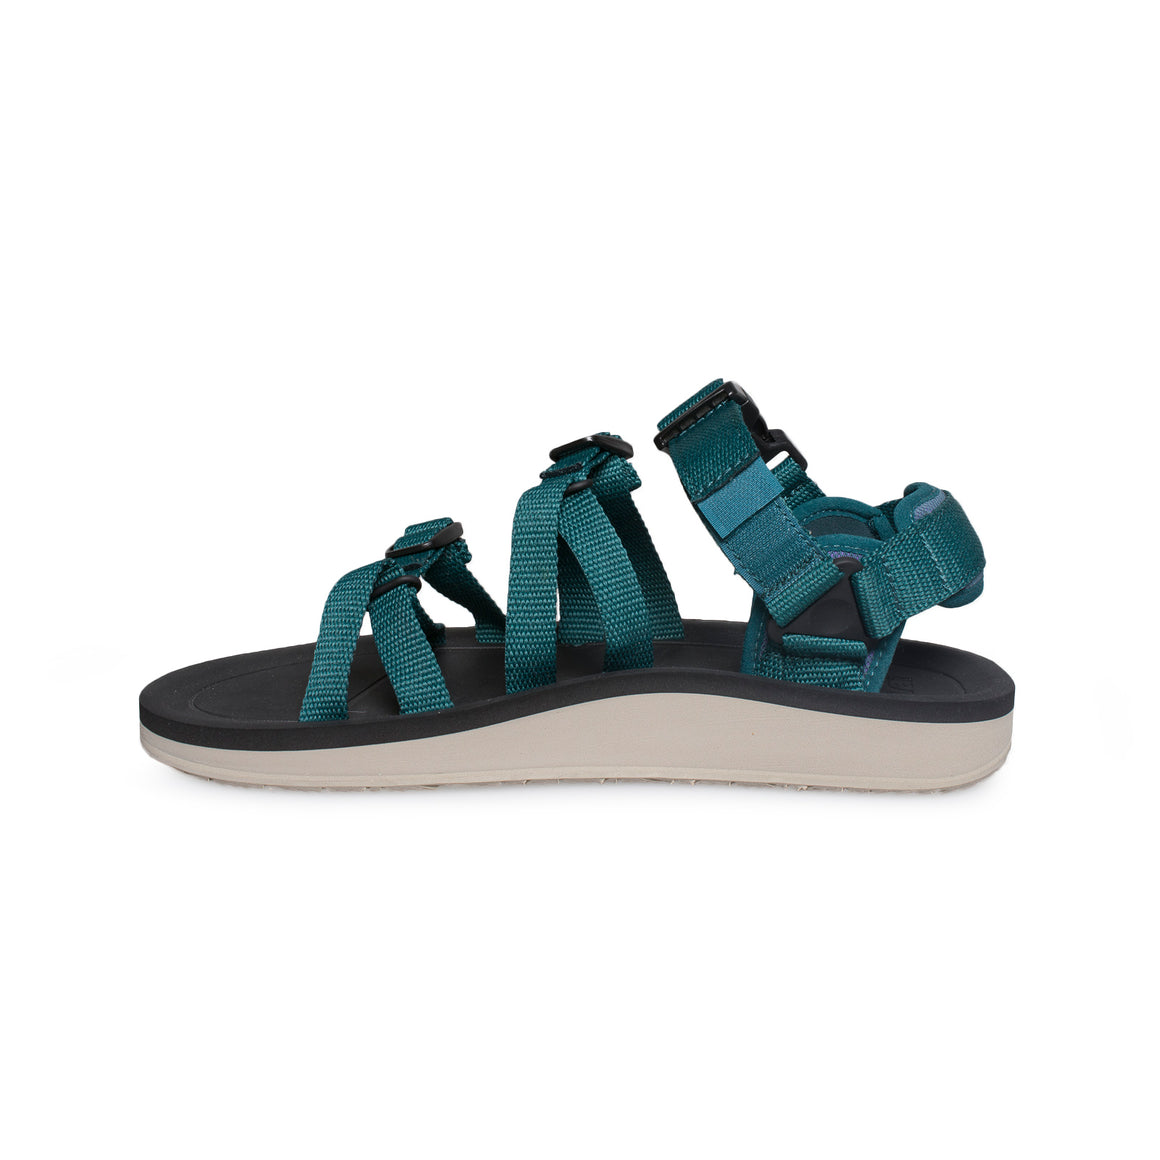 Teva Alp Premier Deep Teal Sandals - Men's